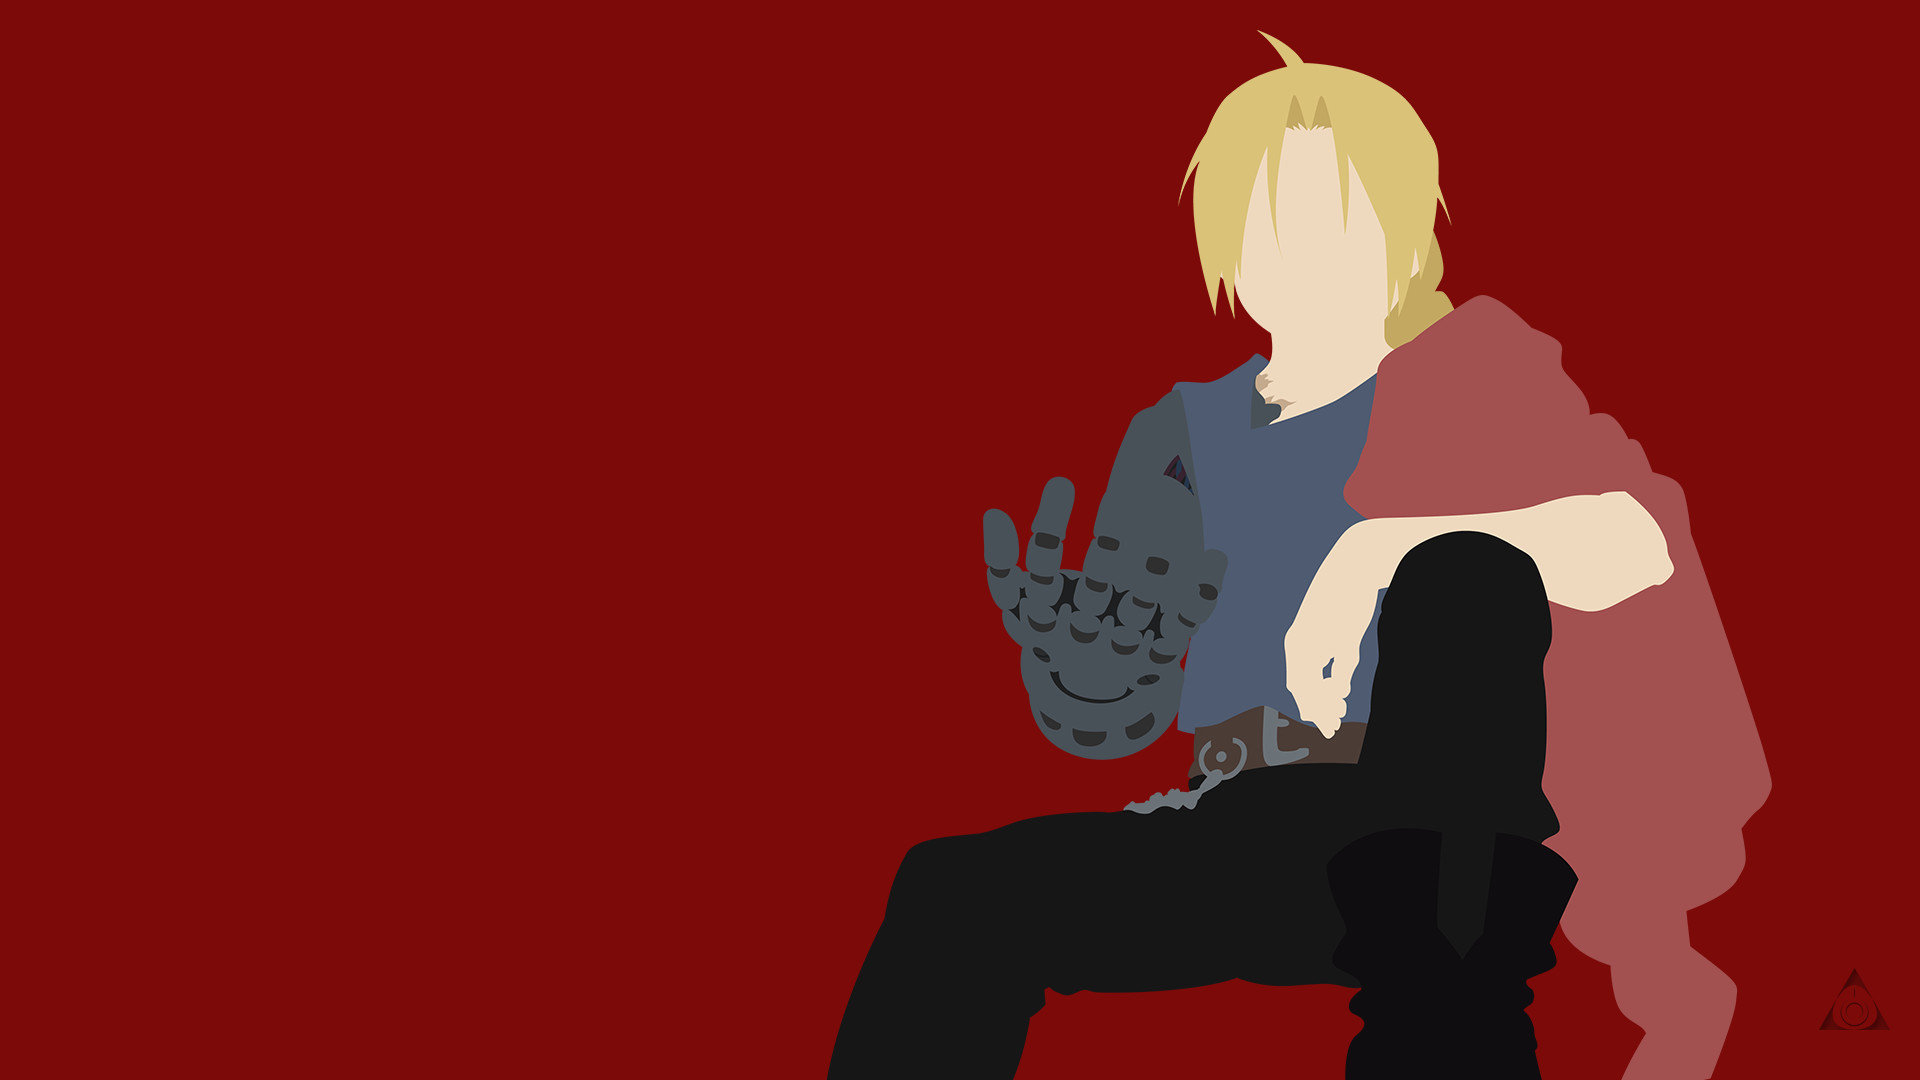 Download hd 1080p FullMetal Alchemist (FMA) desktop wallpaper ID:310778 for free